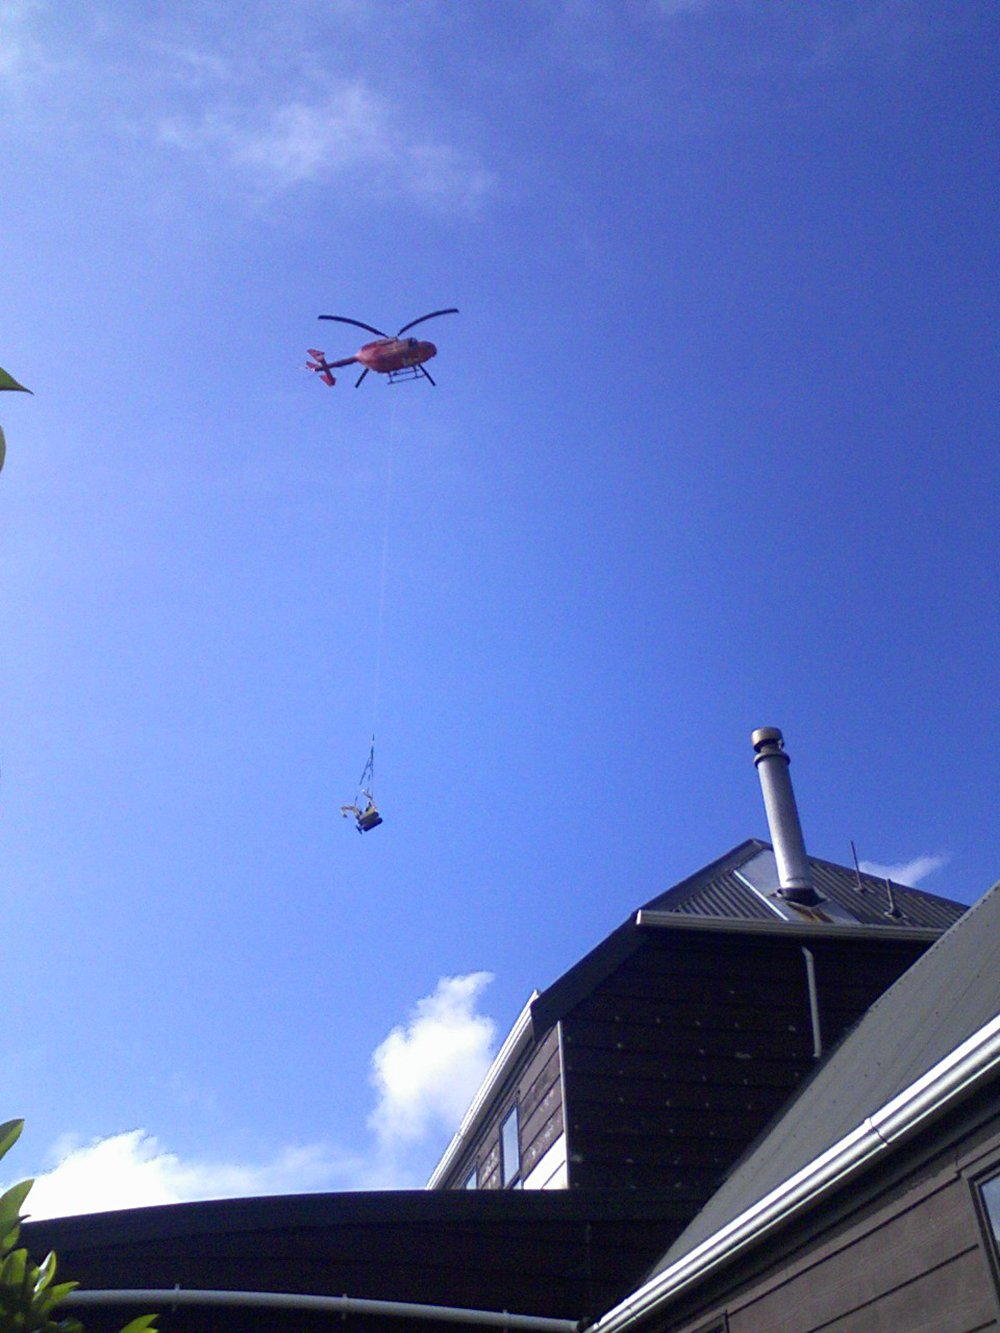 View of the Helicopter transporting the goods